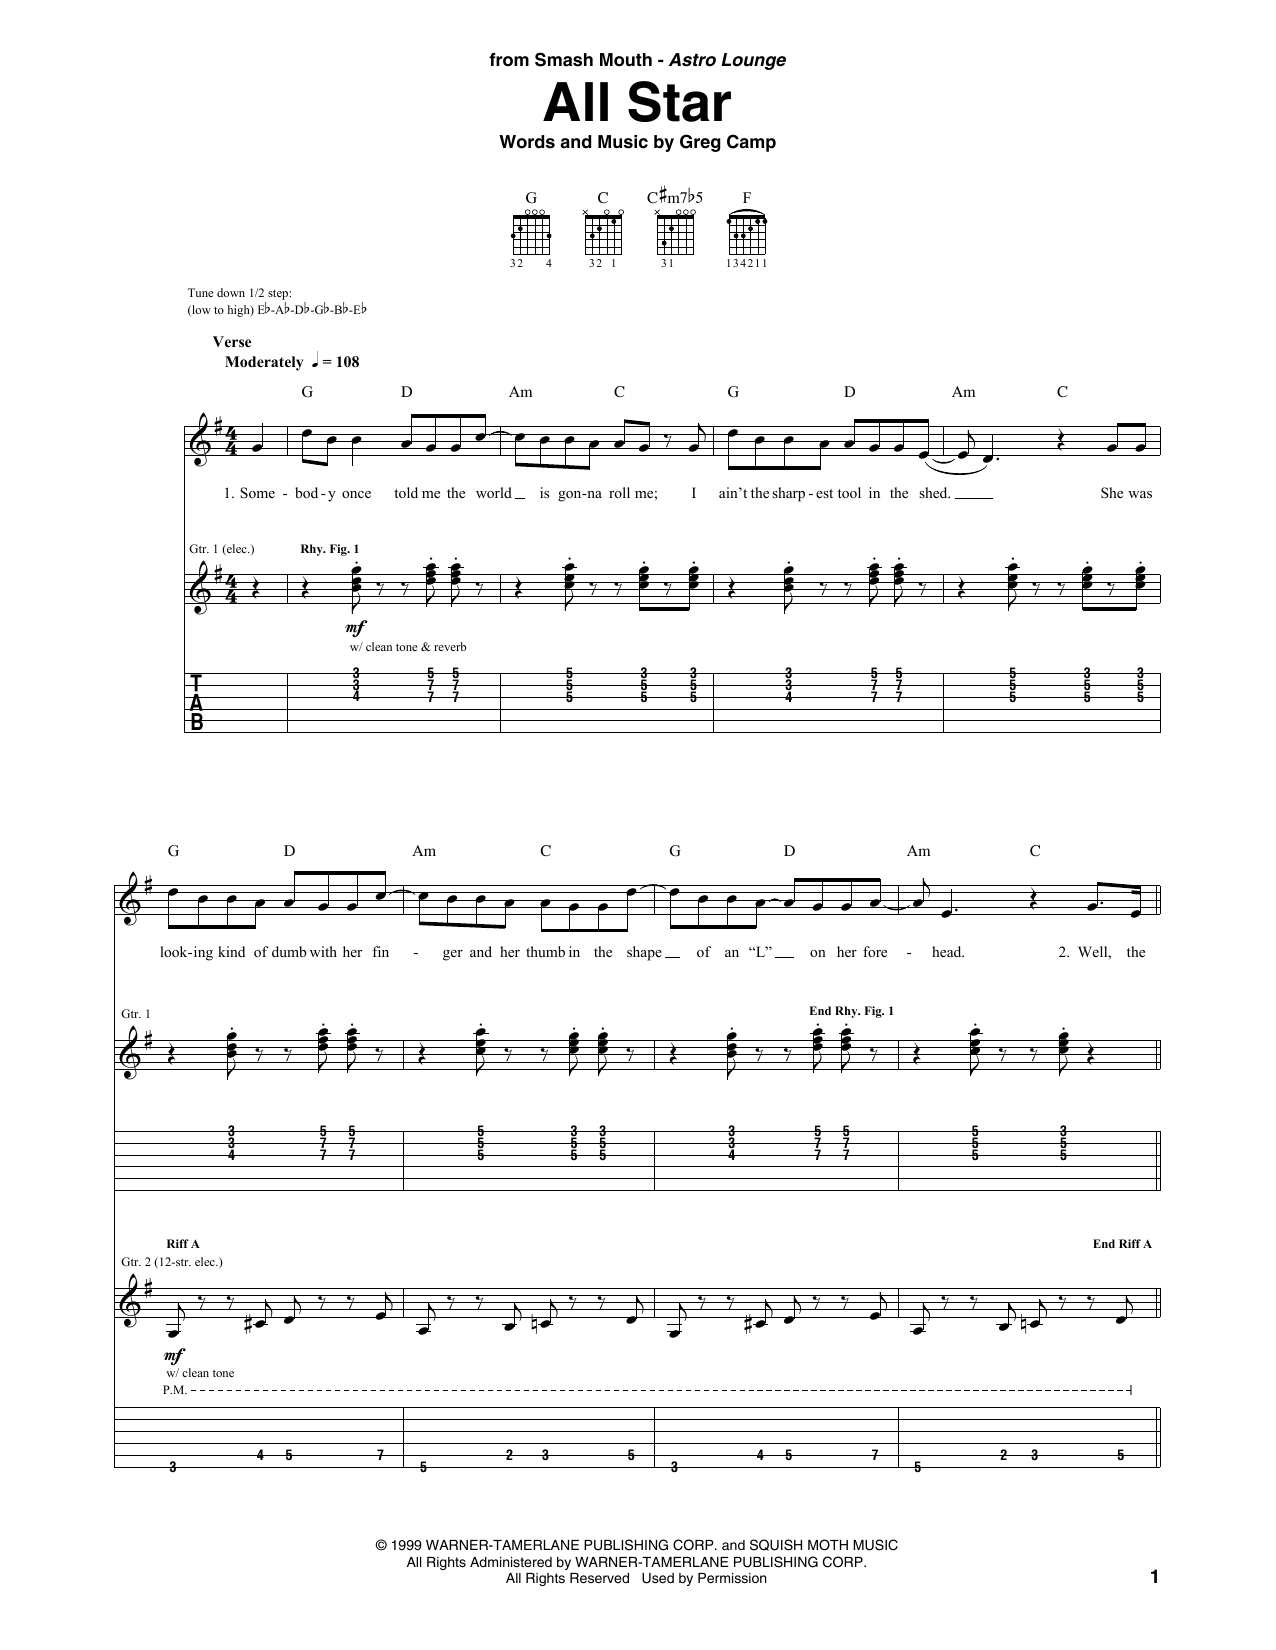 All Star Sheet Music